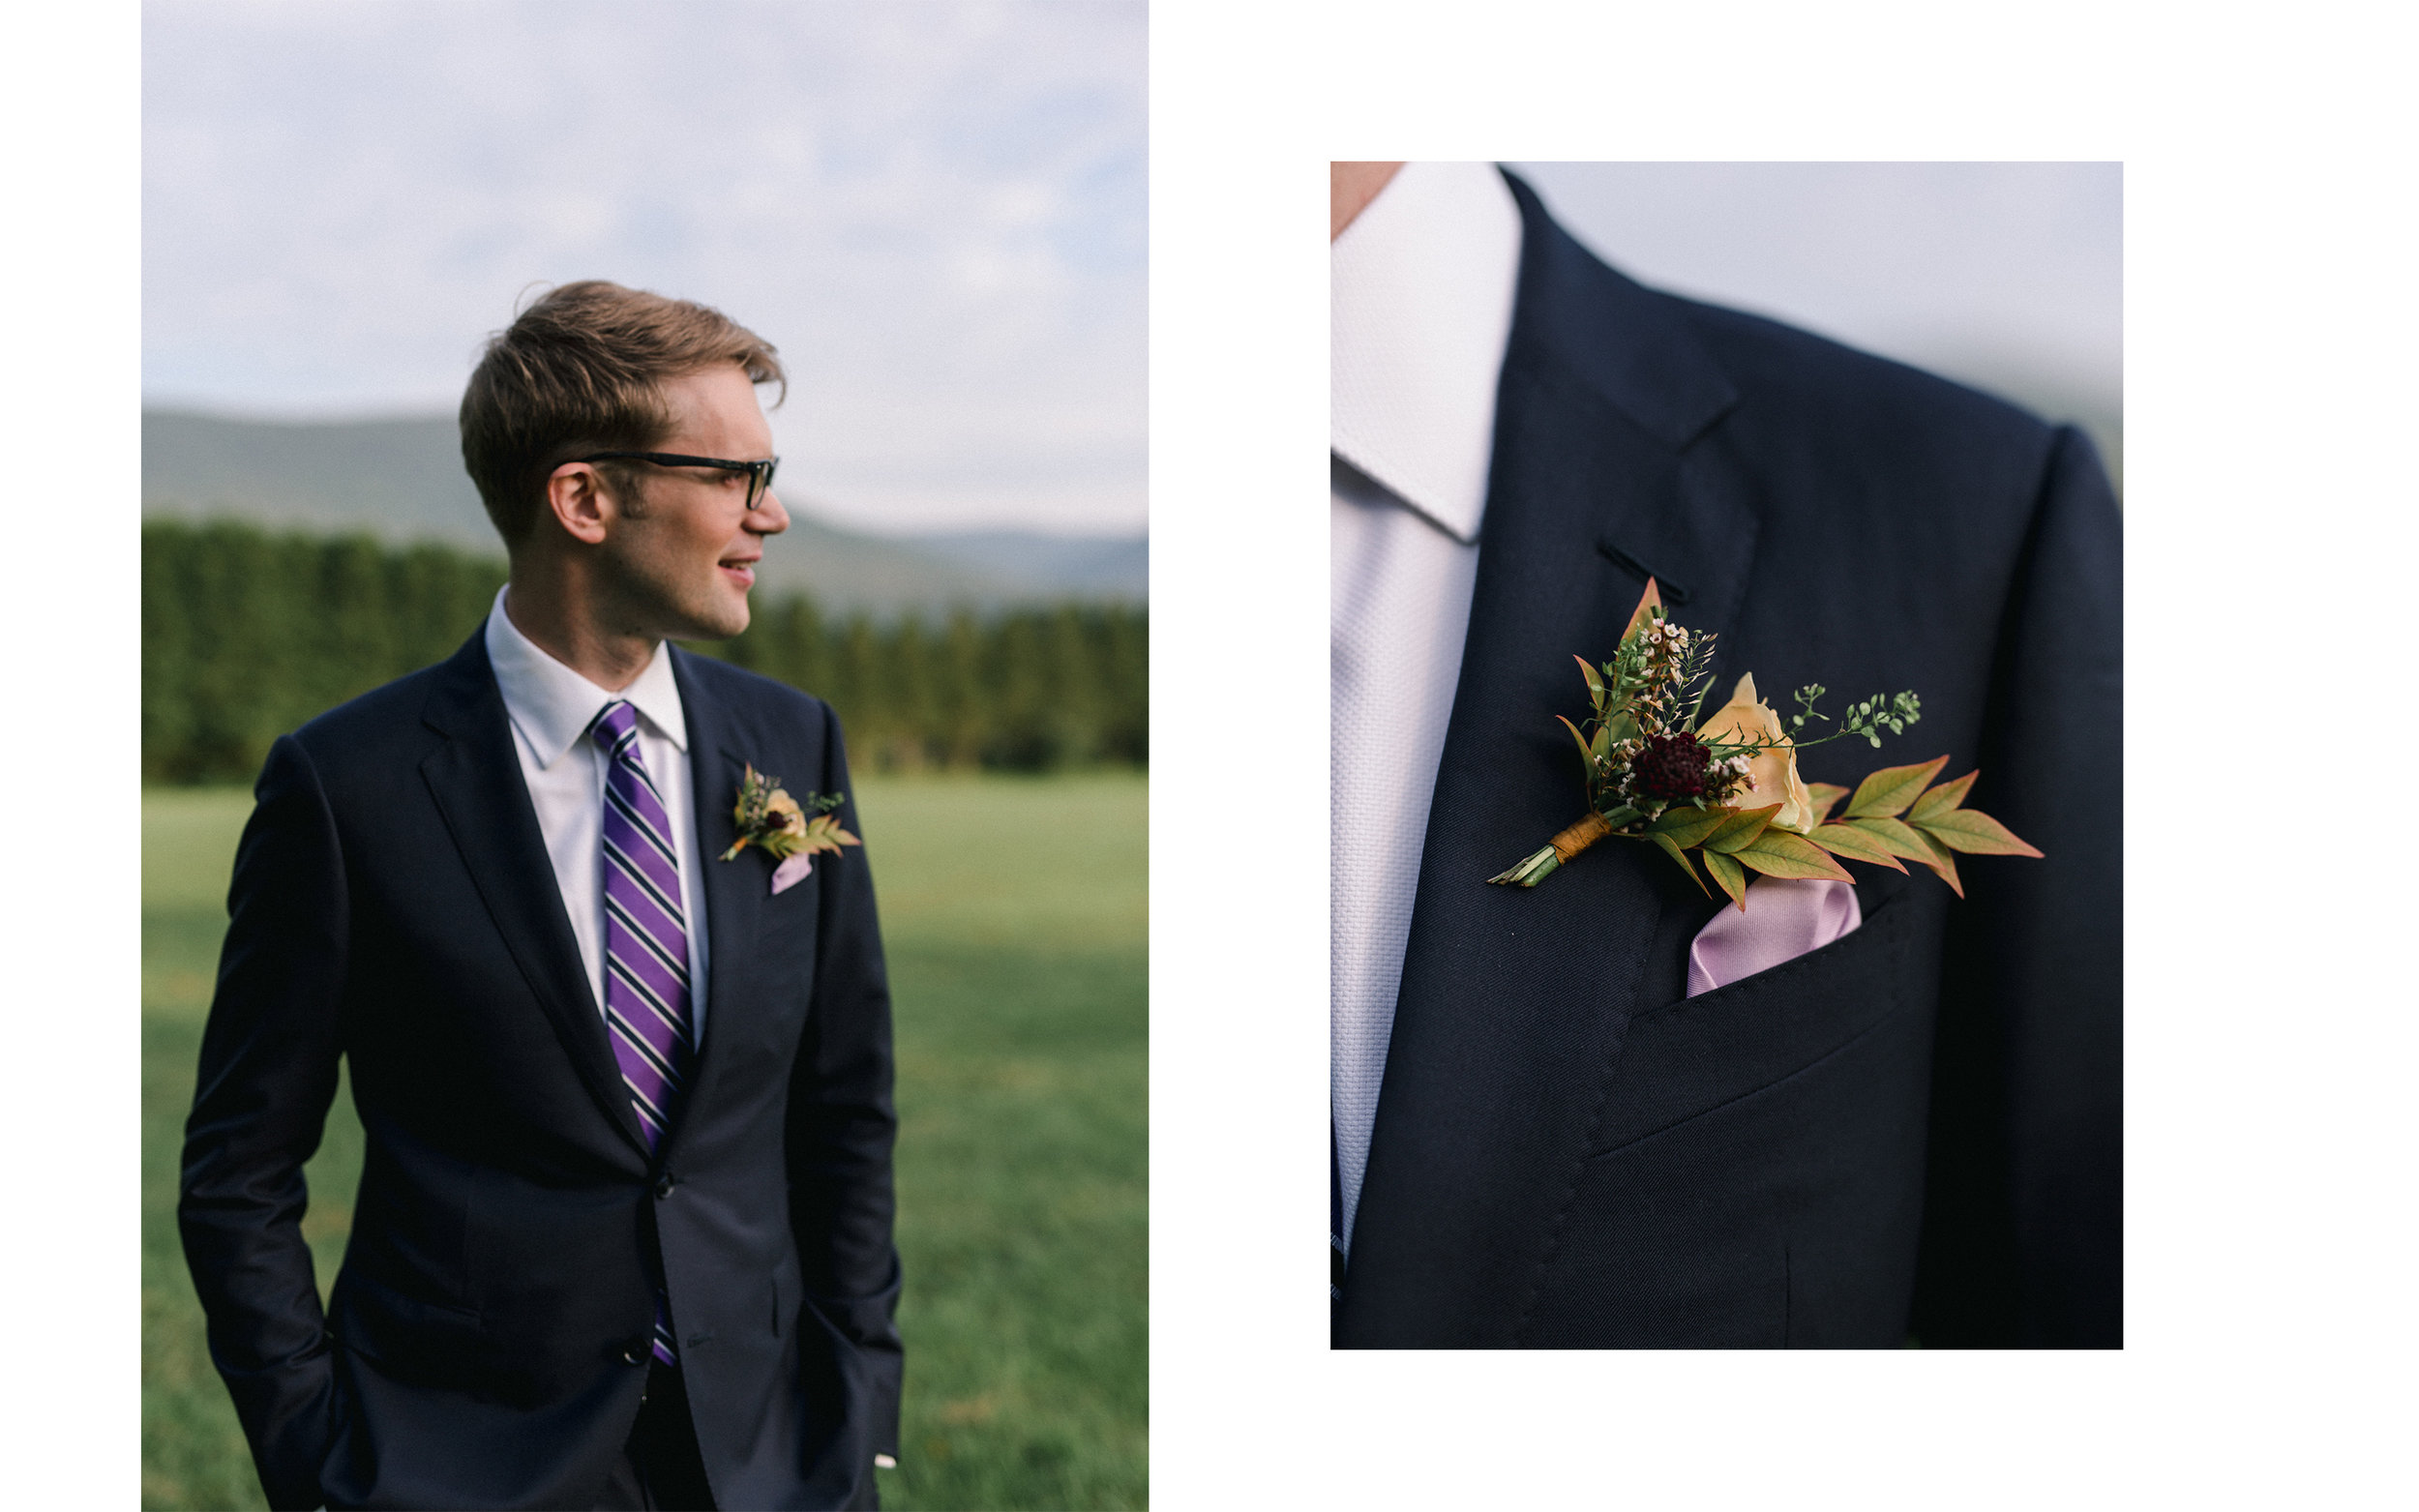 Berkshires Wedding Fine Art Wedding Photographer_Meg Haley Photographs_032.jpg